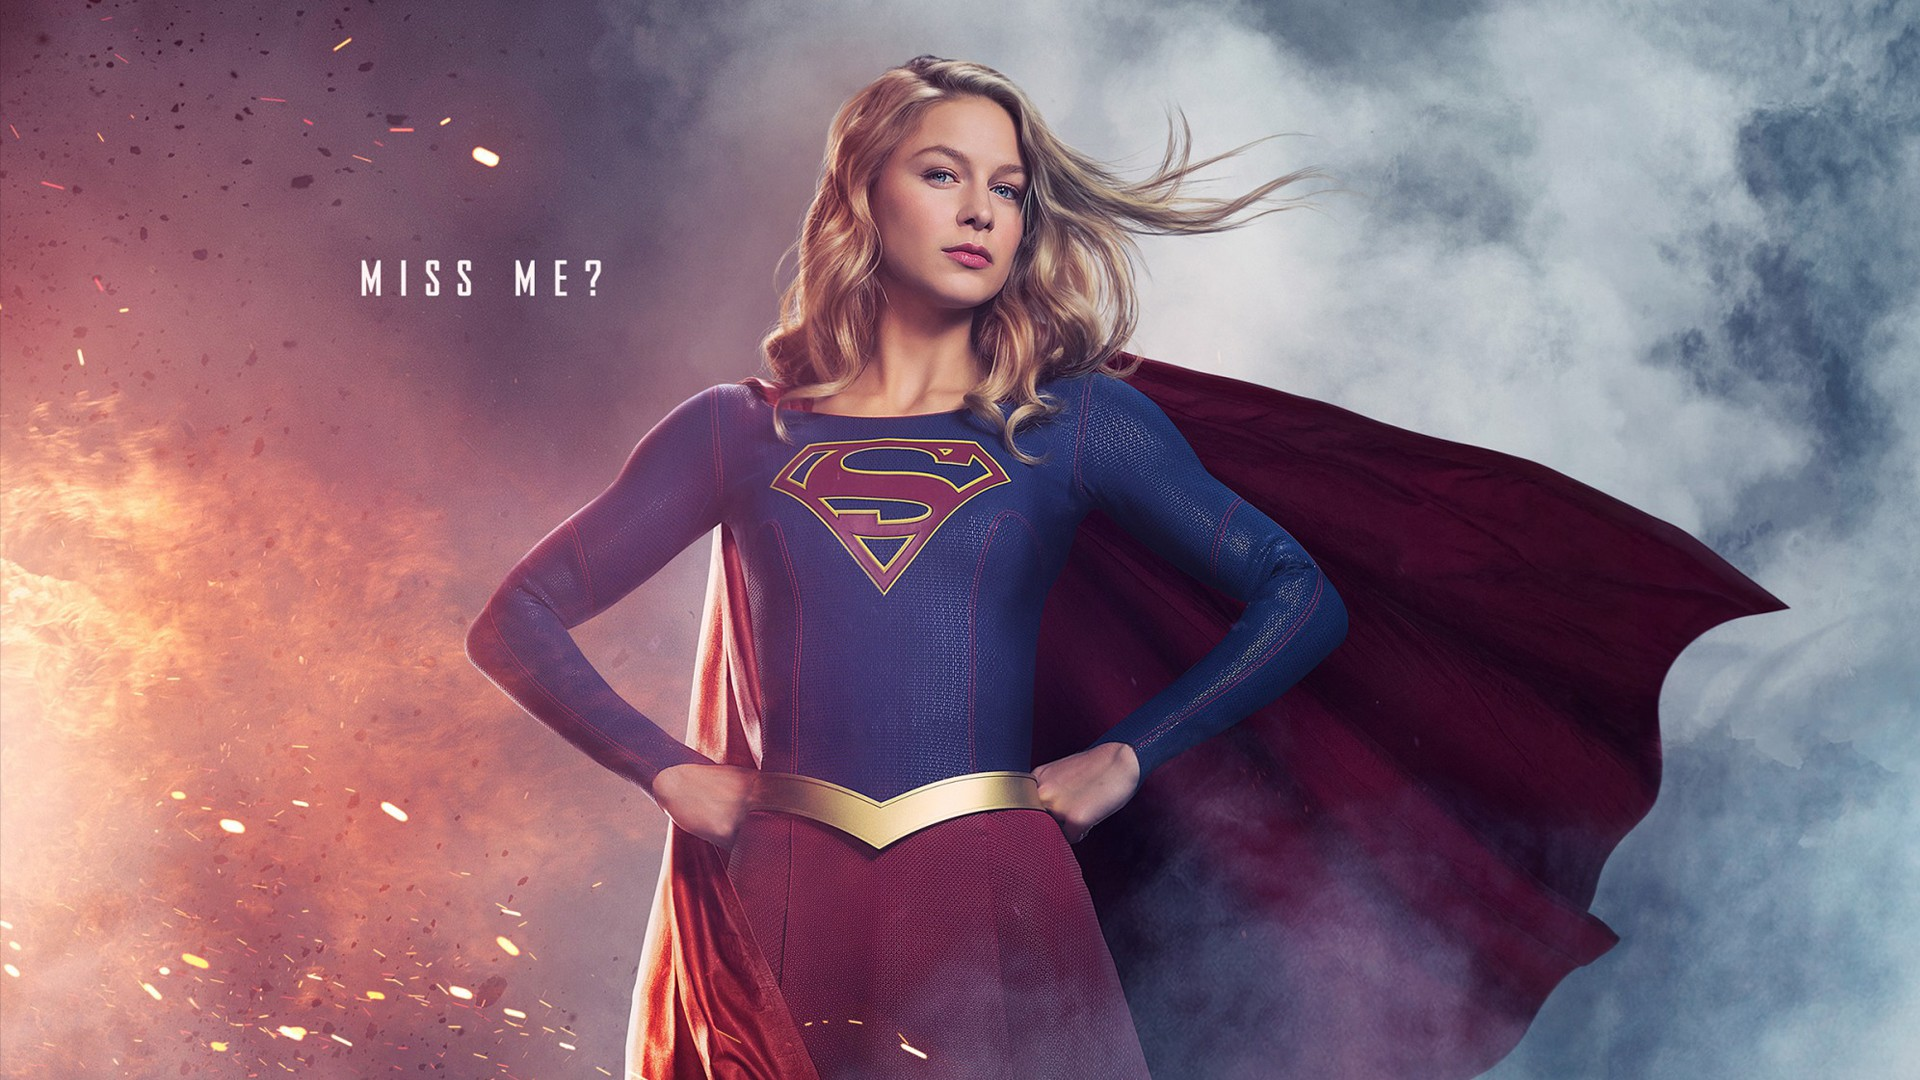 Supergirl Wallpaper Hd Posted By John Simpson